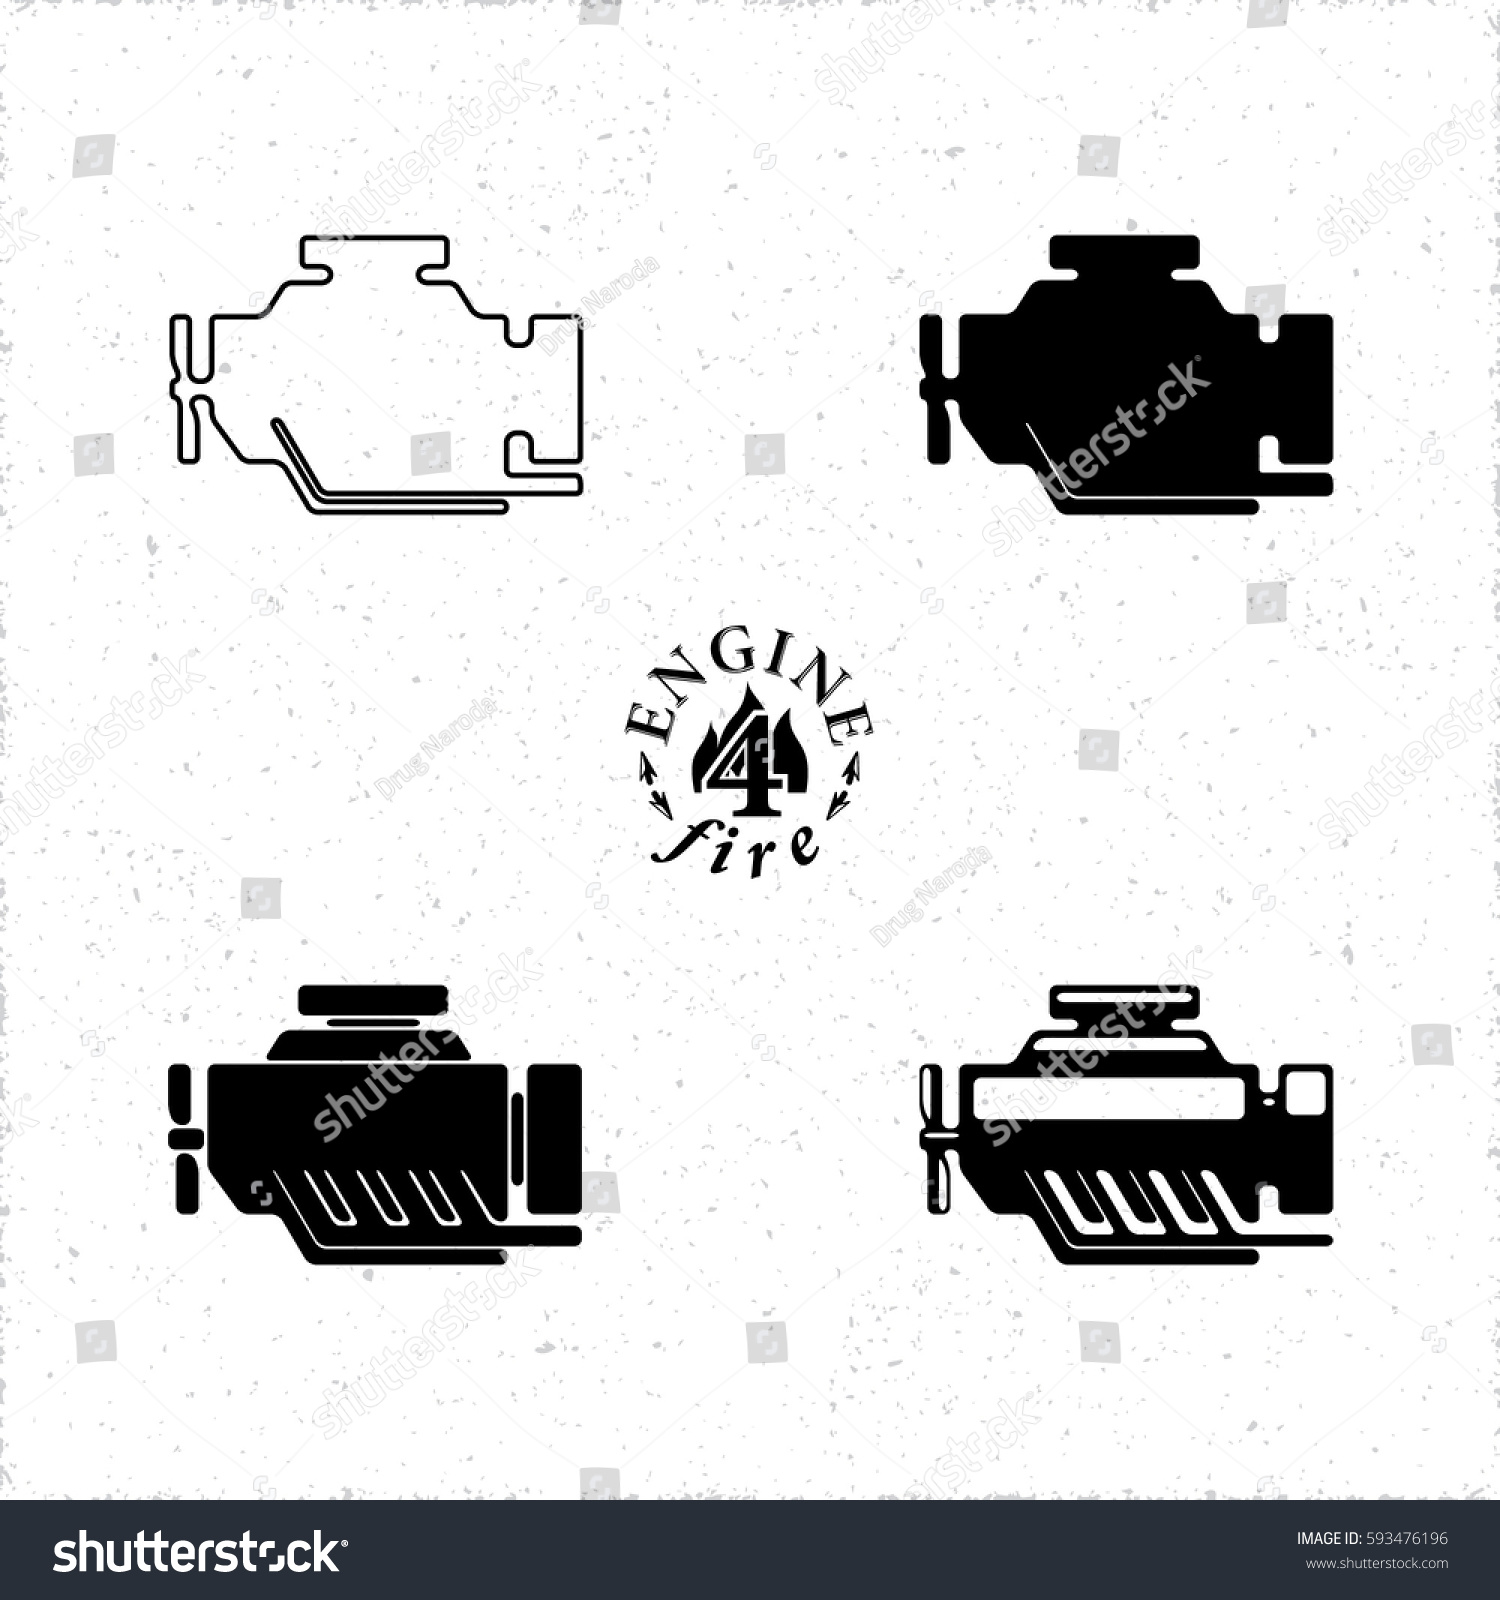 Internal Combustion Engine Car Motor 4 Stock Vector Royalty Free Simple Diagram Or Icons Set In Four Different Graphic Styles Black